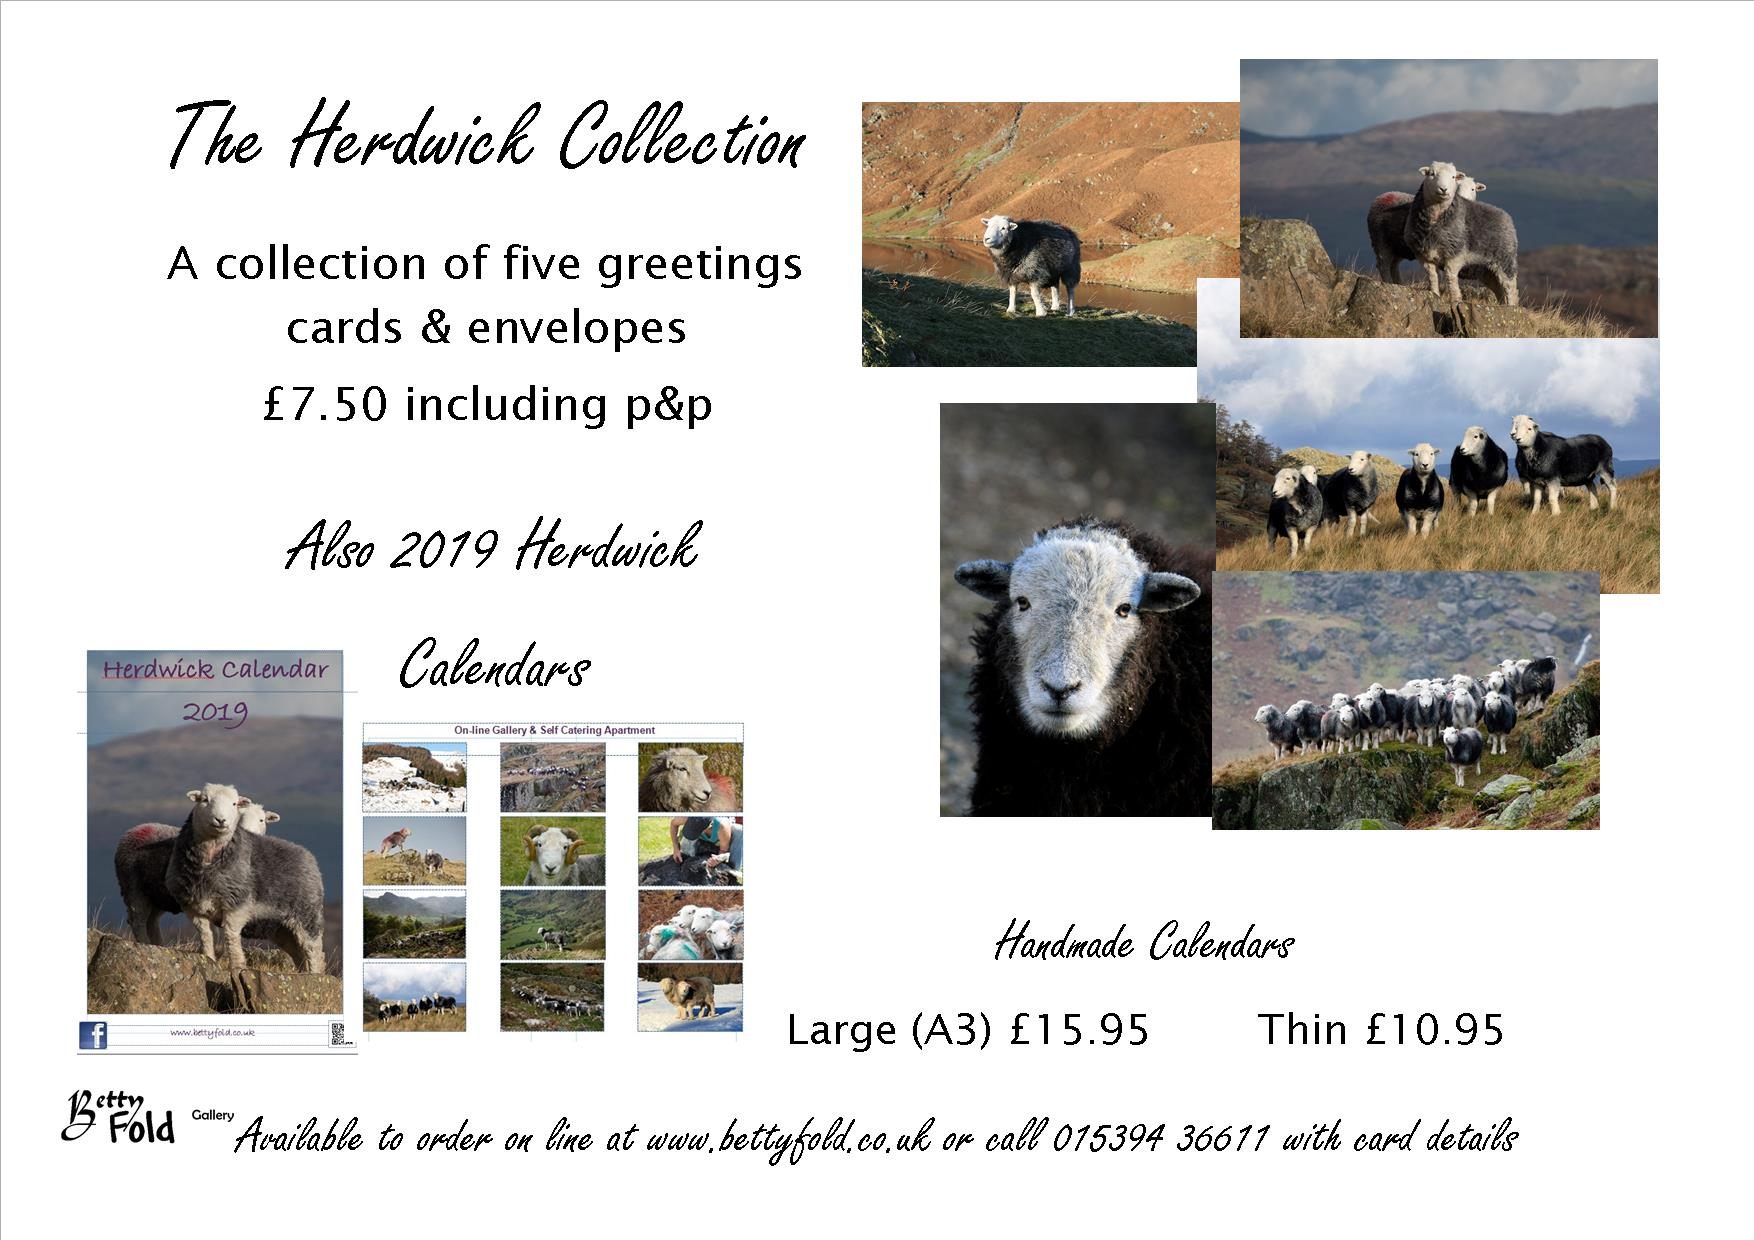 Herdwick images from Betty Fold Gallery